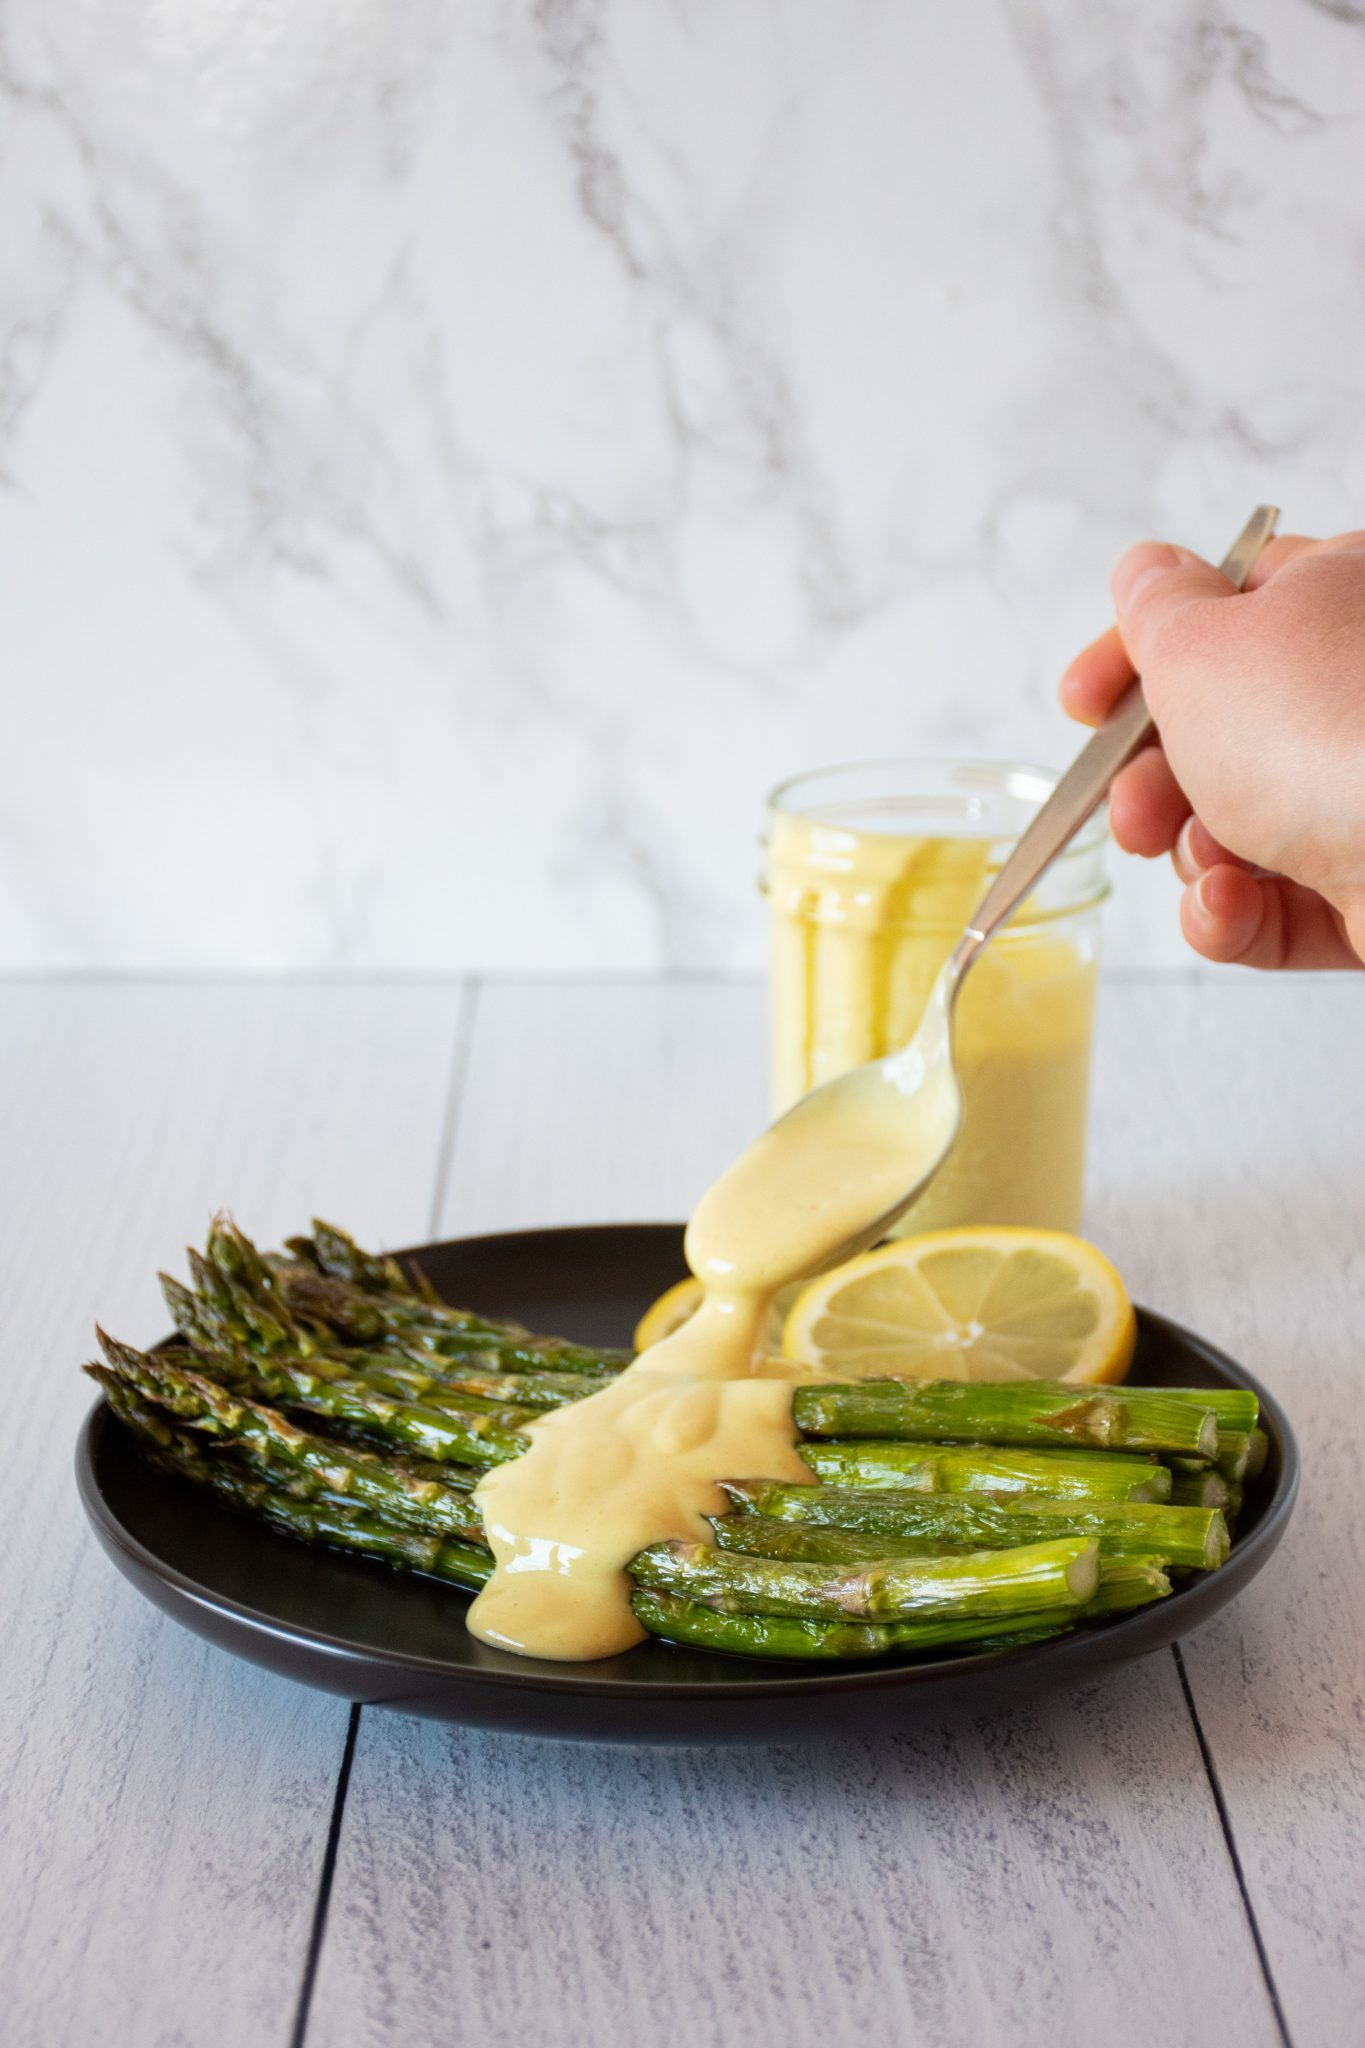 Plate of asparagus being drizzled with sauce.